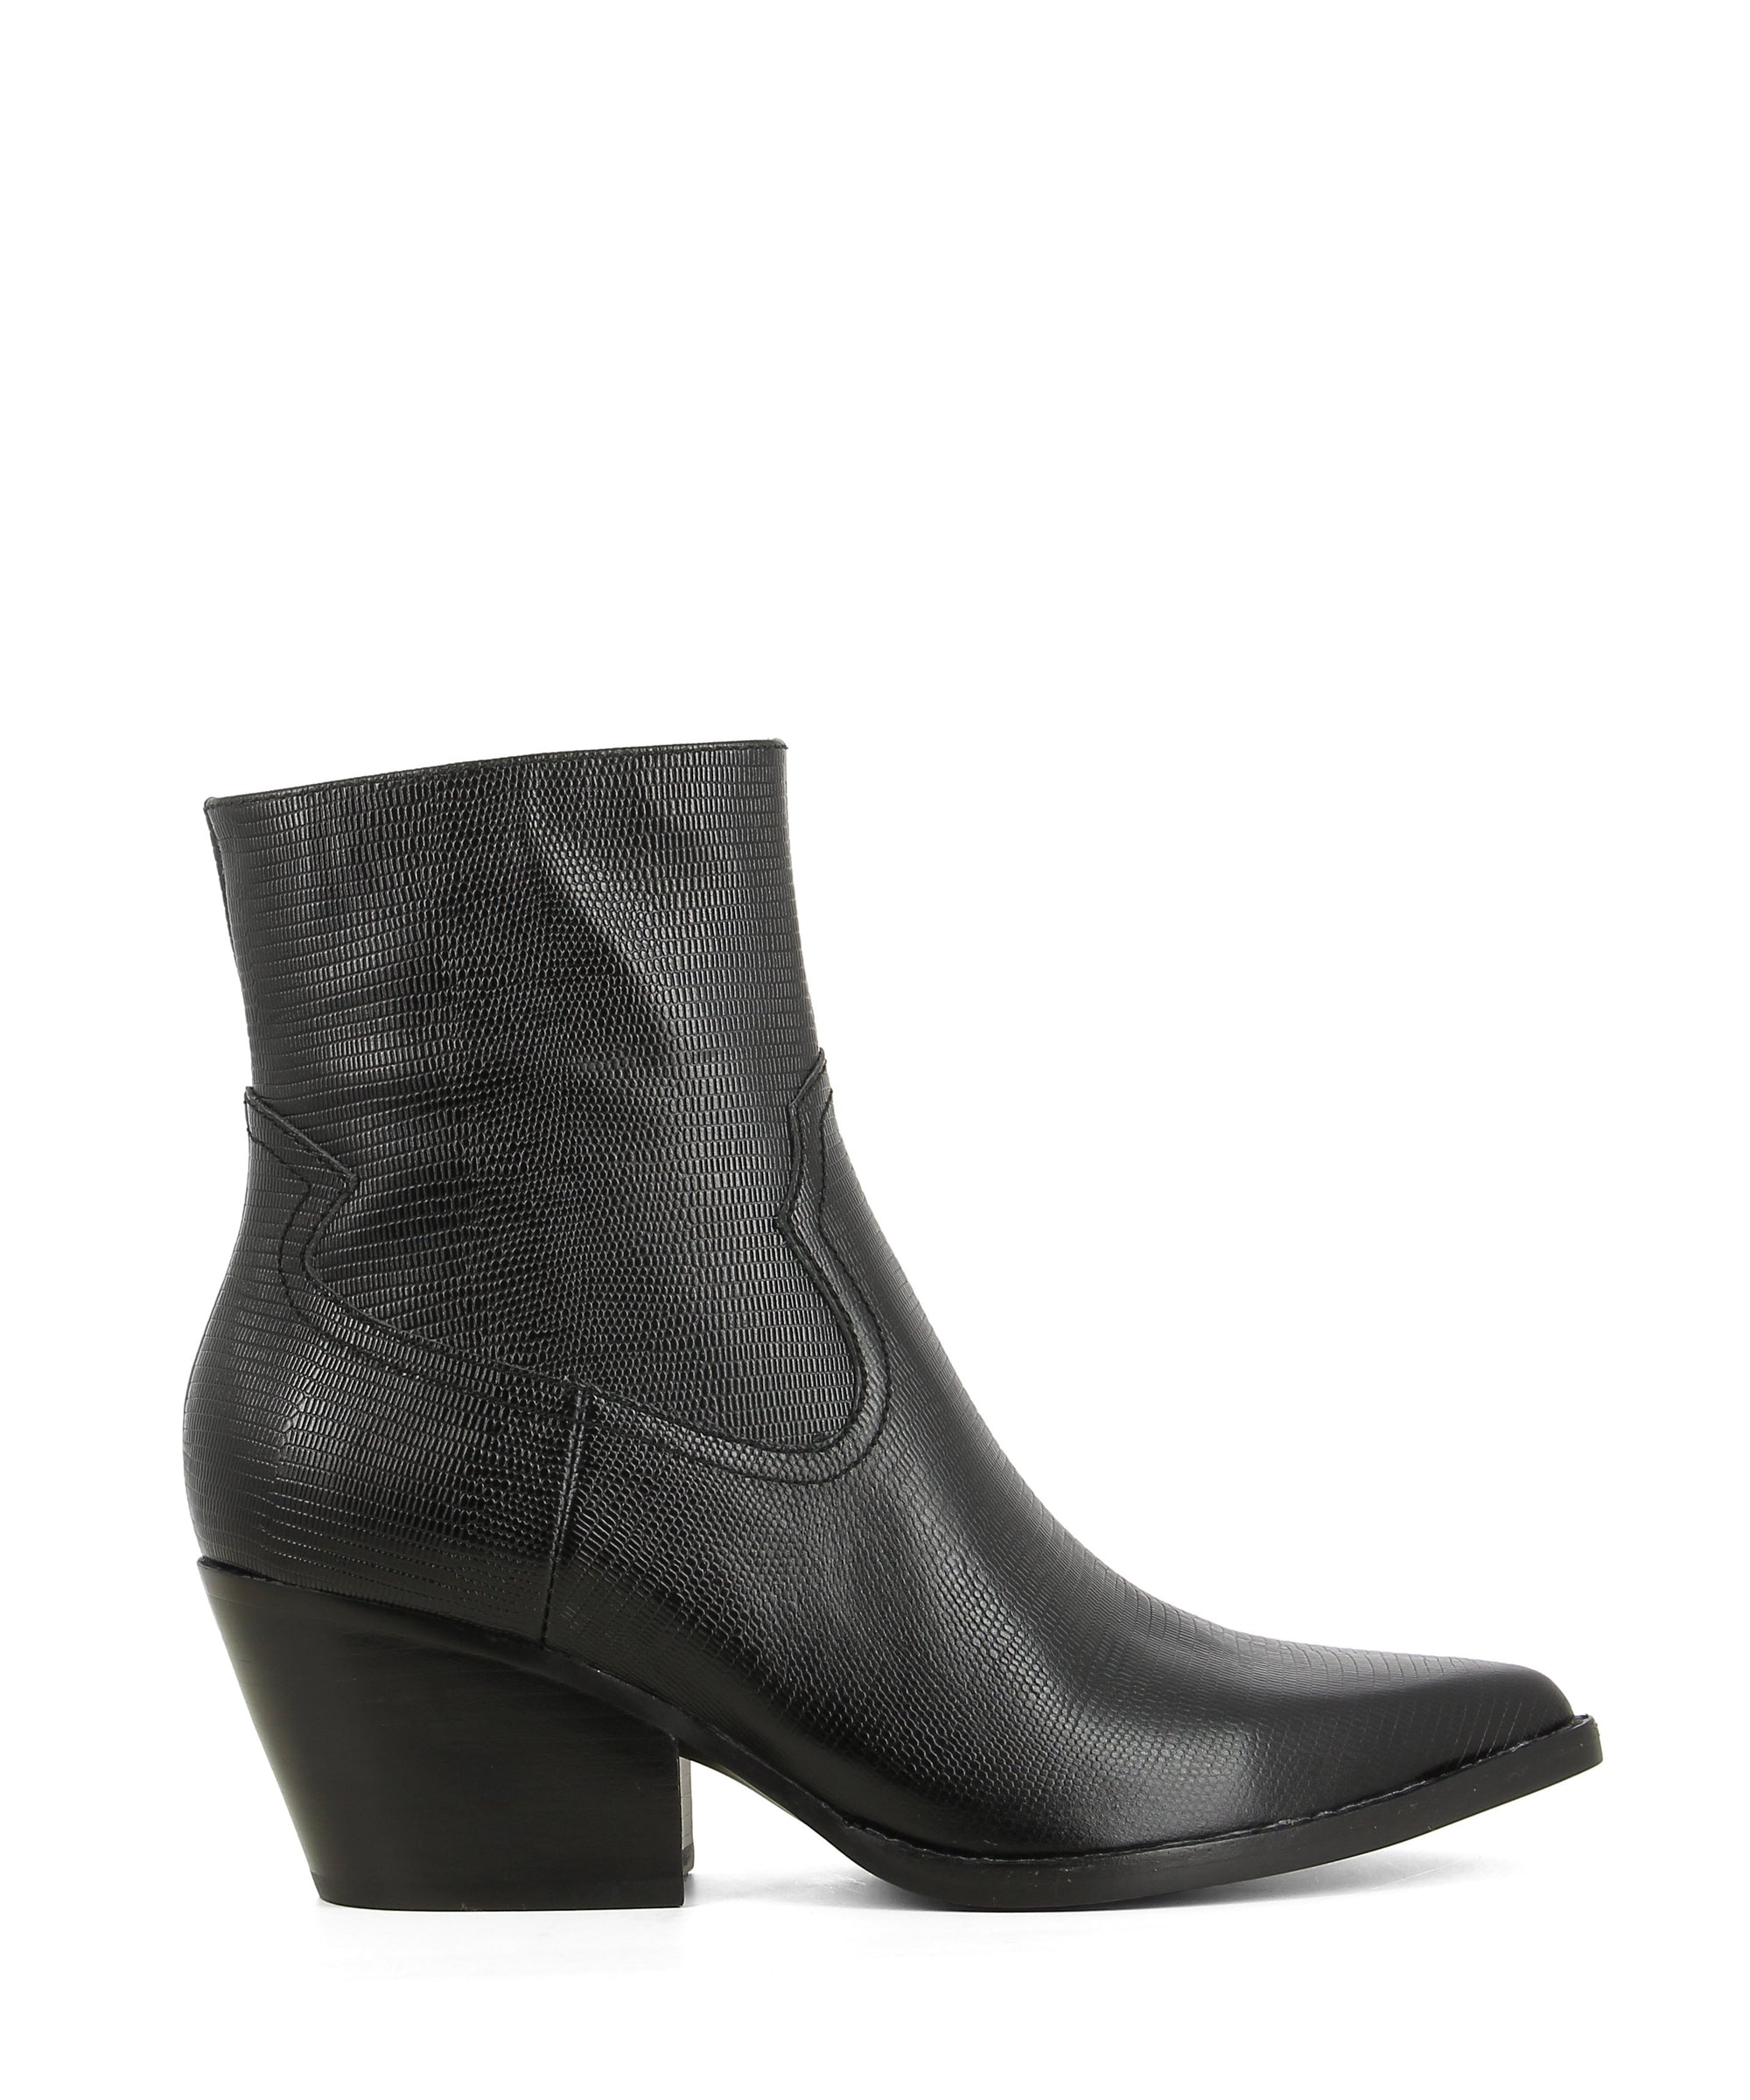 A black leather Western style ankle boot with zipper fastening, and features a lizard texture to the upper, a block heel and a pointed heel by Jeffrey Campbell.